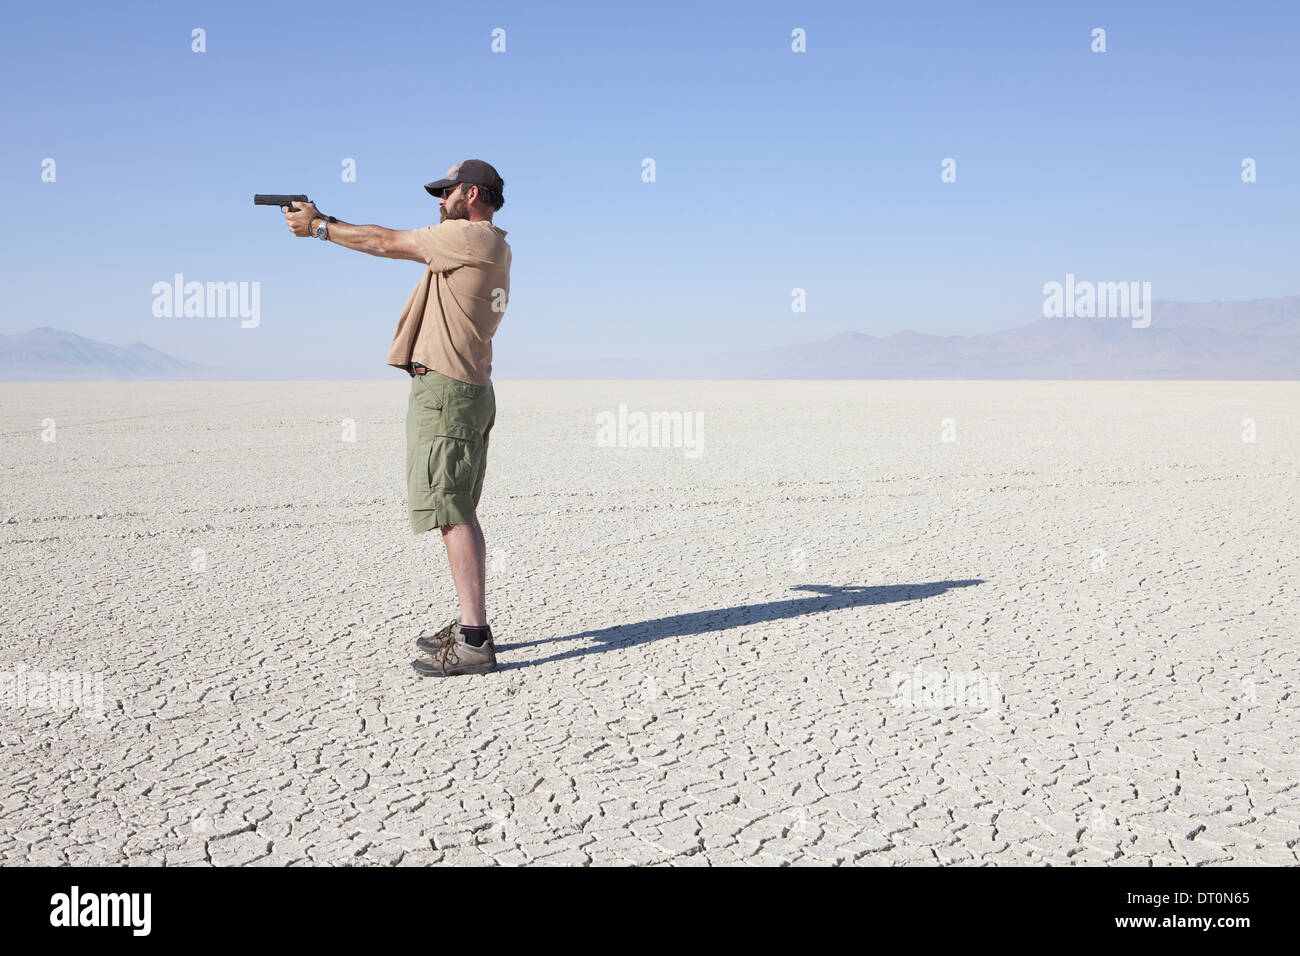 Black Rock Desert Nevada USA man aiming hand gun with his arm outstretched Stock Photo